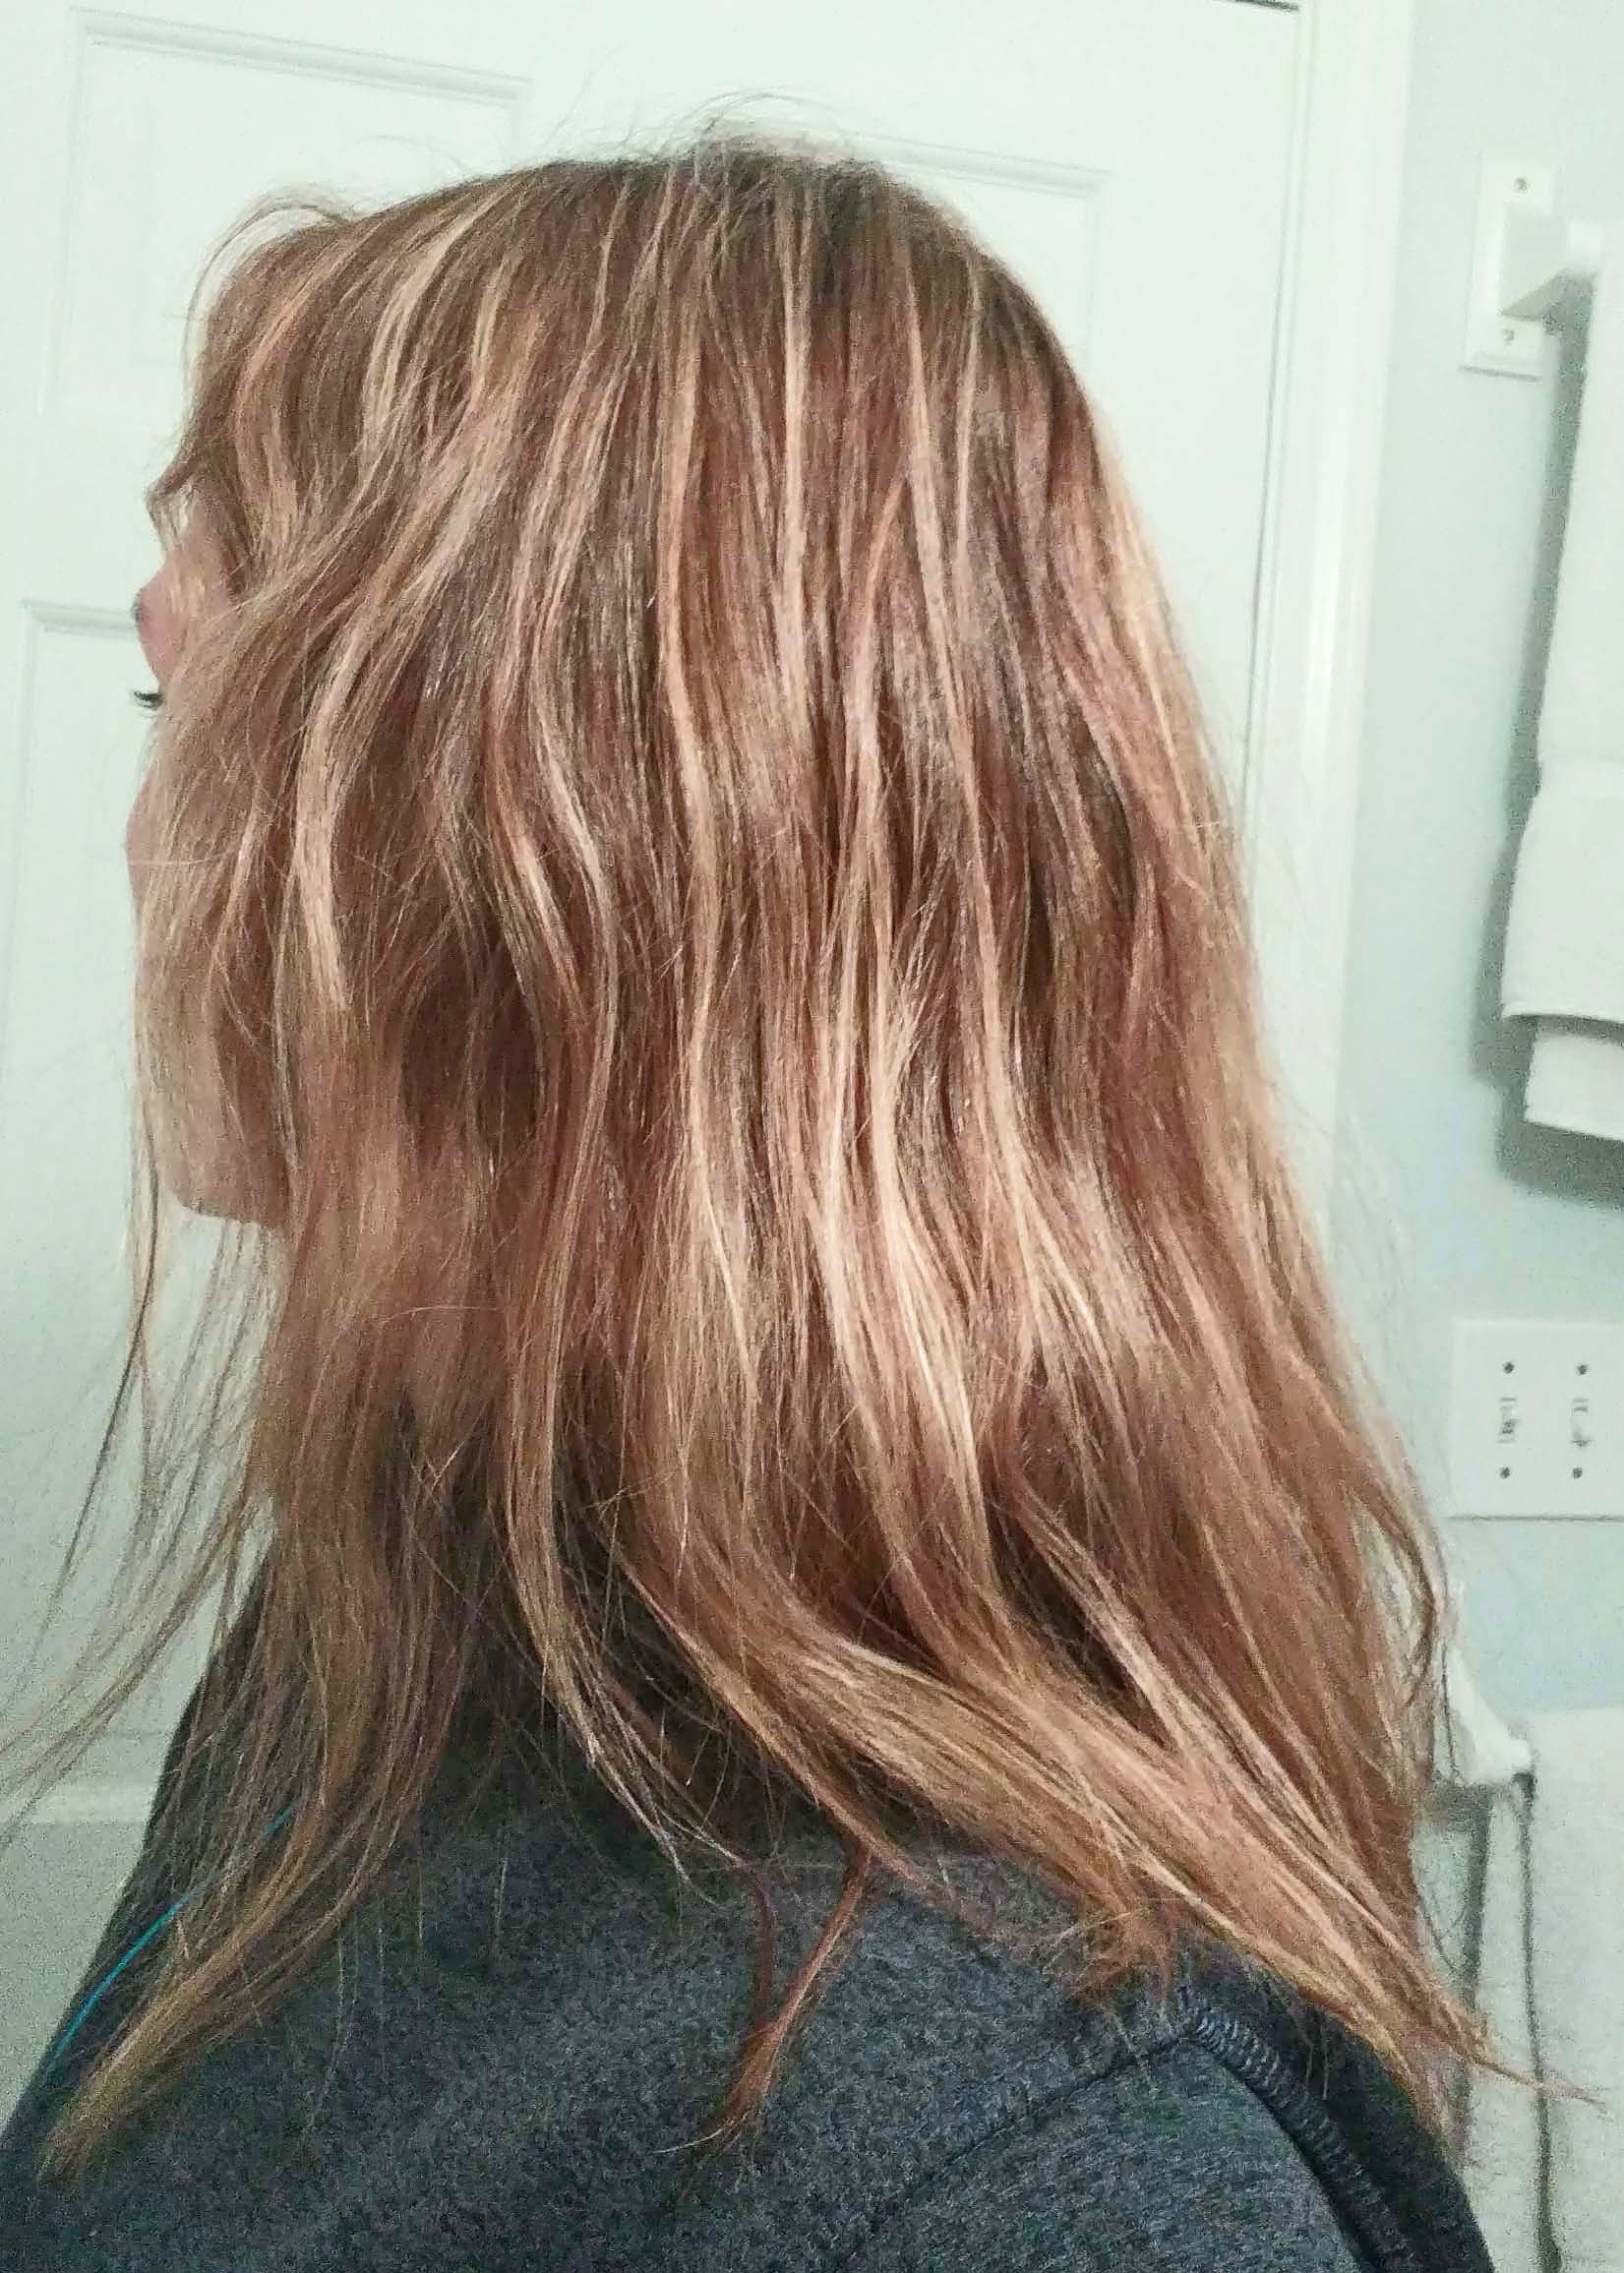 after monat side view